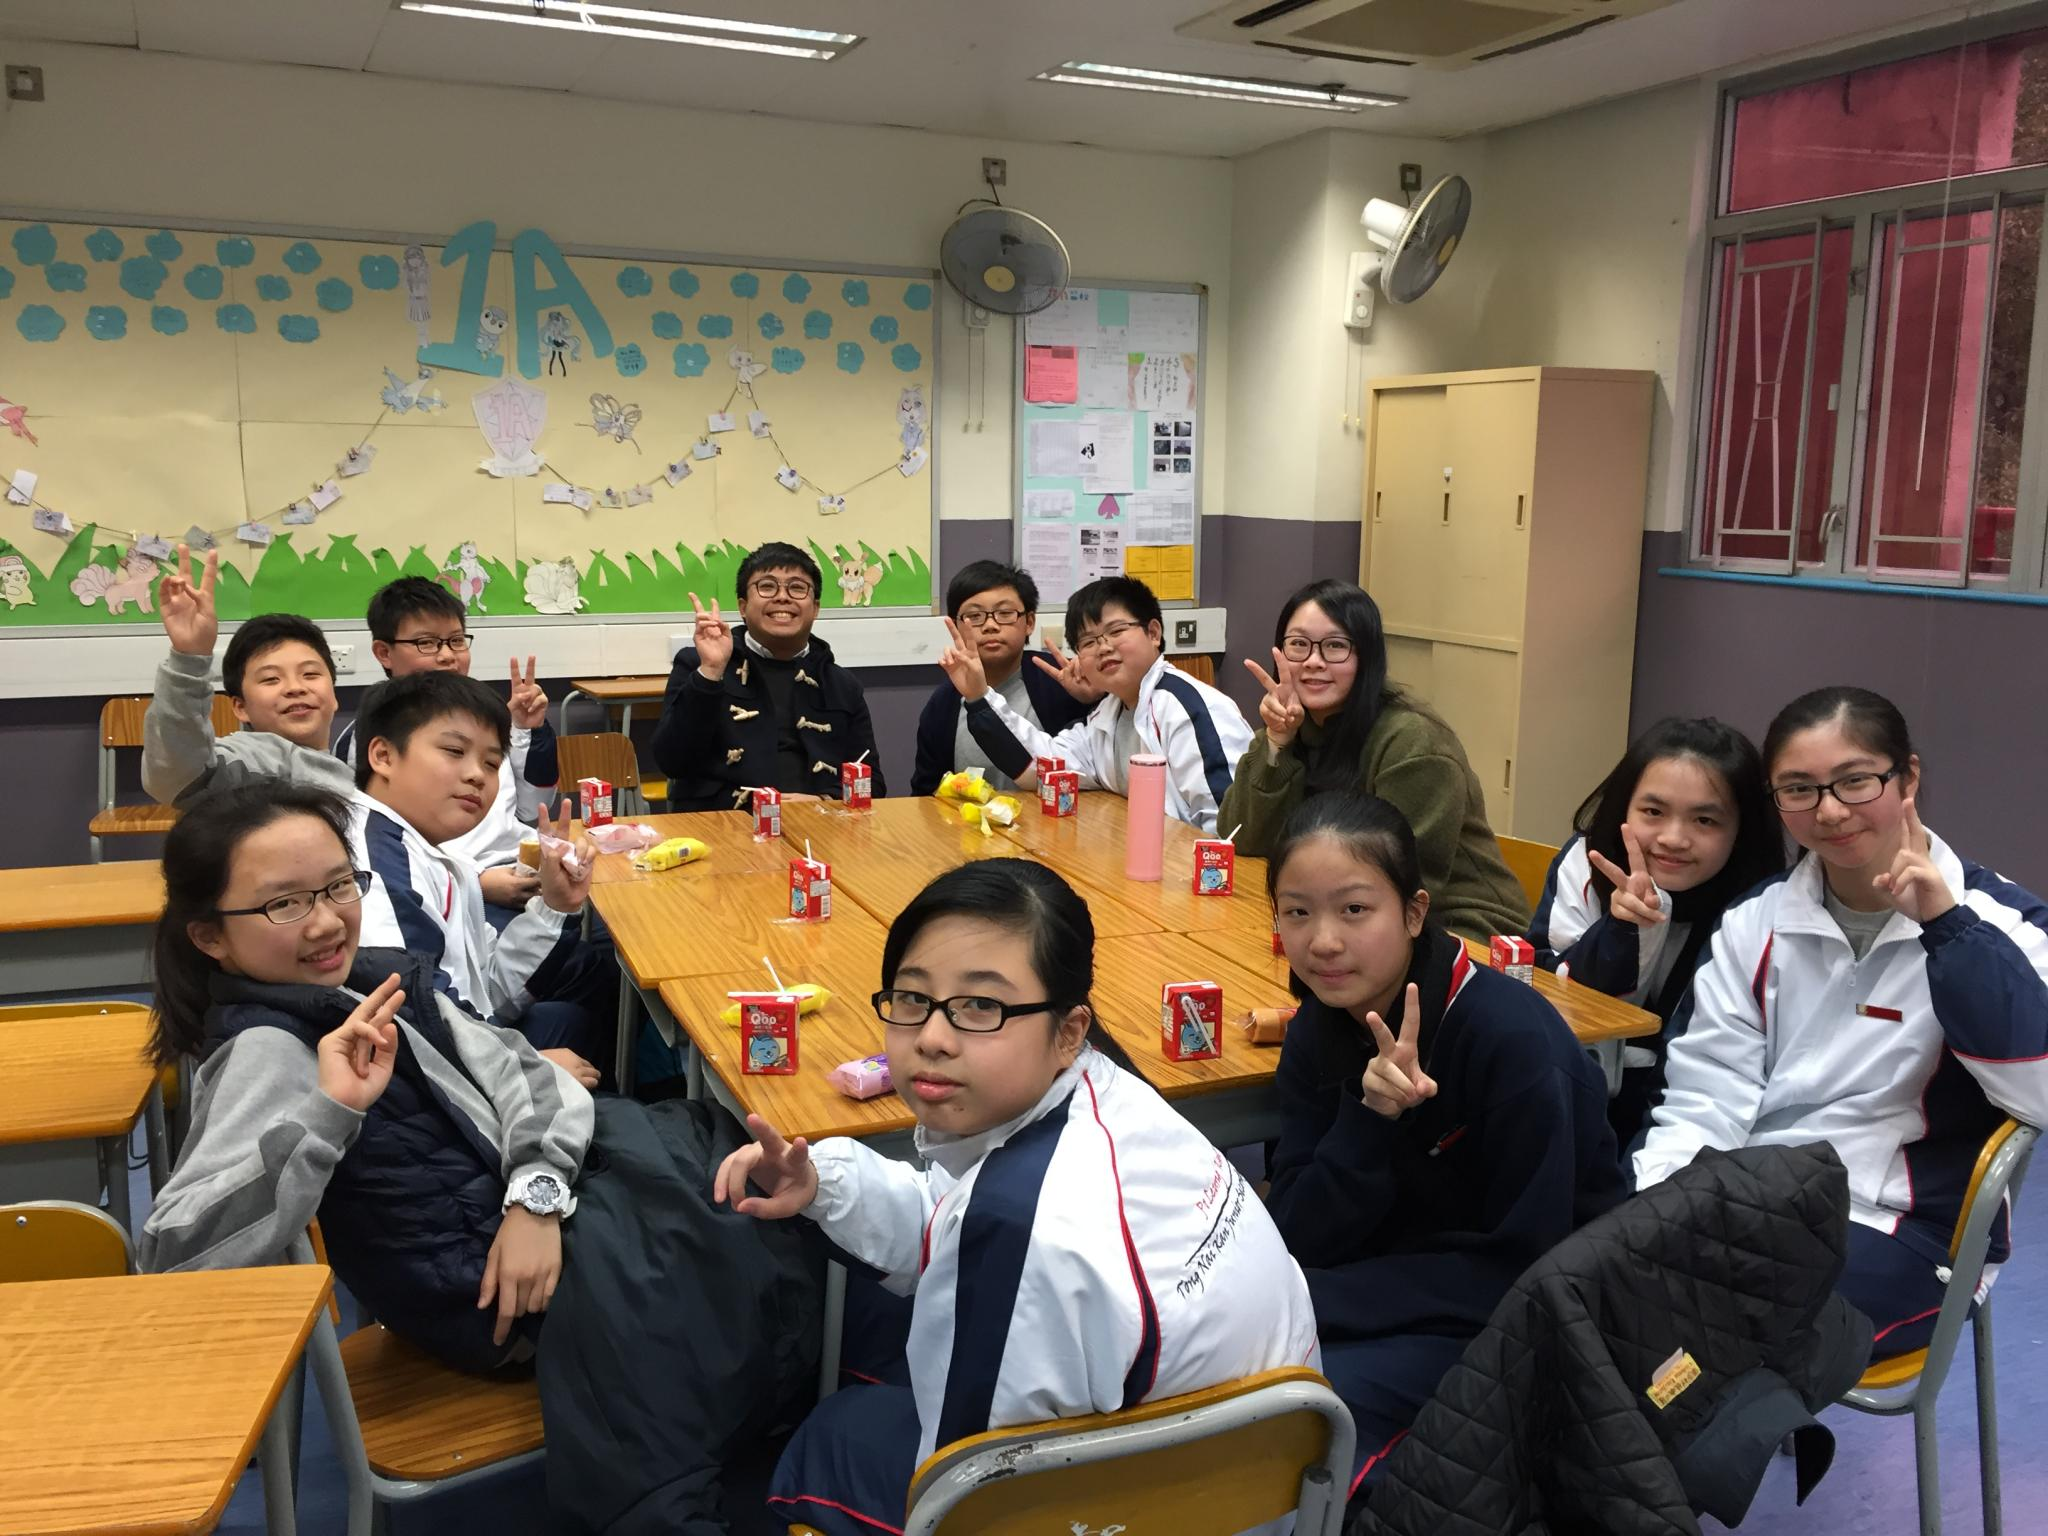 Some of the 1A students had a happy tea gathering with their class teachers.